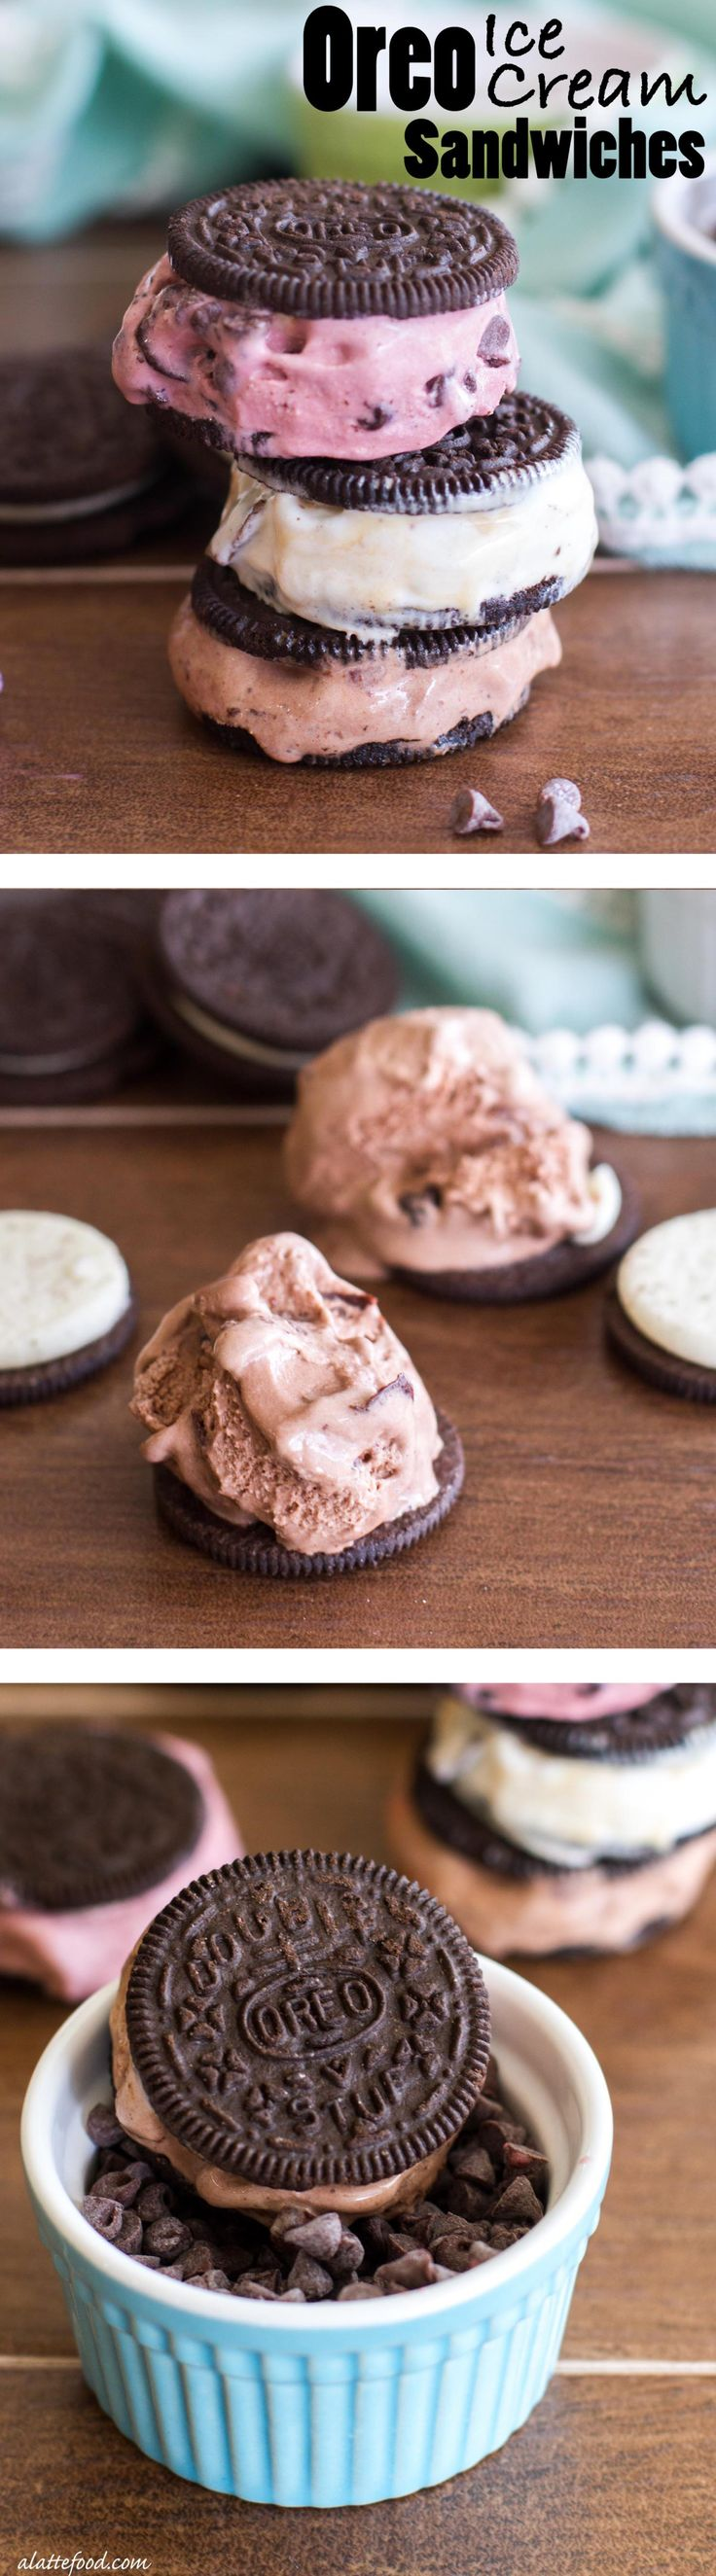 These easy Oreo ice cream sandwiches are my new favorite dessert! Scoops of ice cream stuffed in between Oreos and rolled in toppings is all it takes to get your chocolate fix!